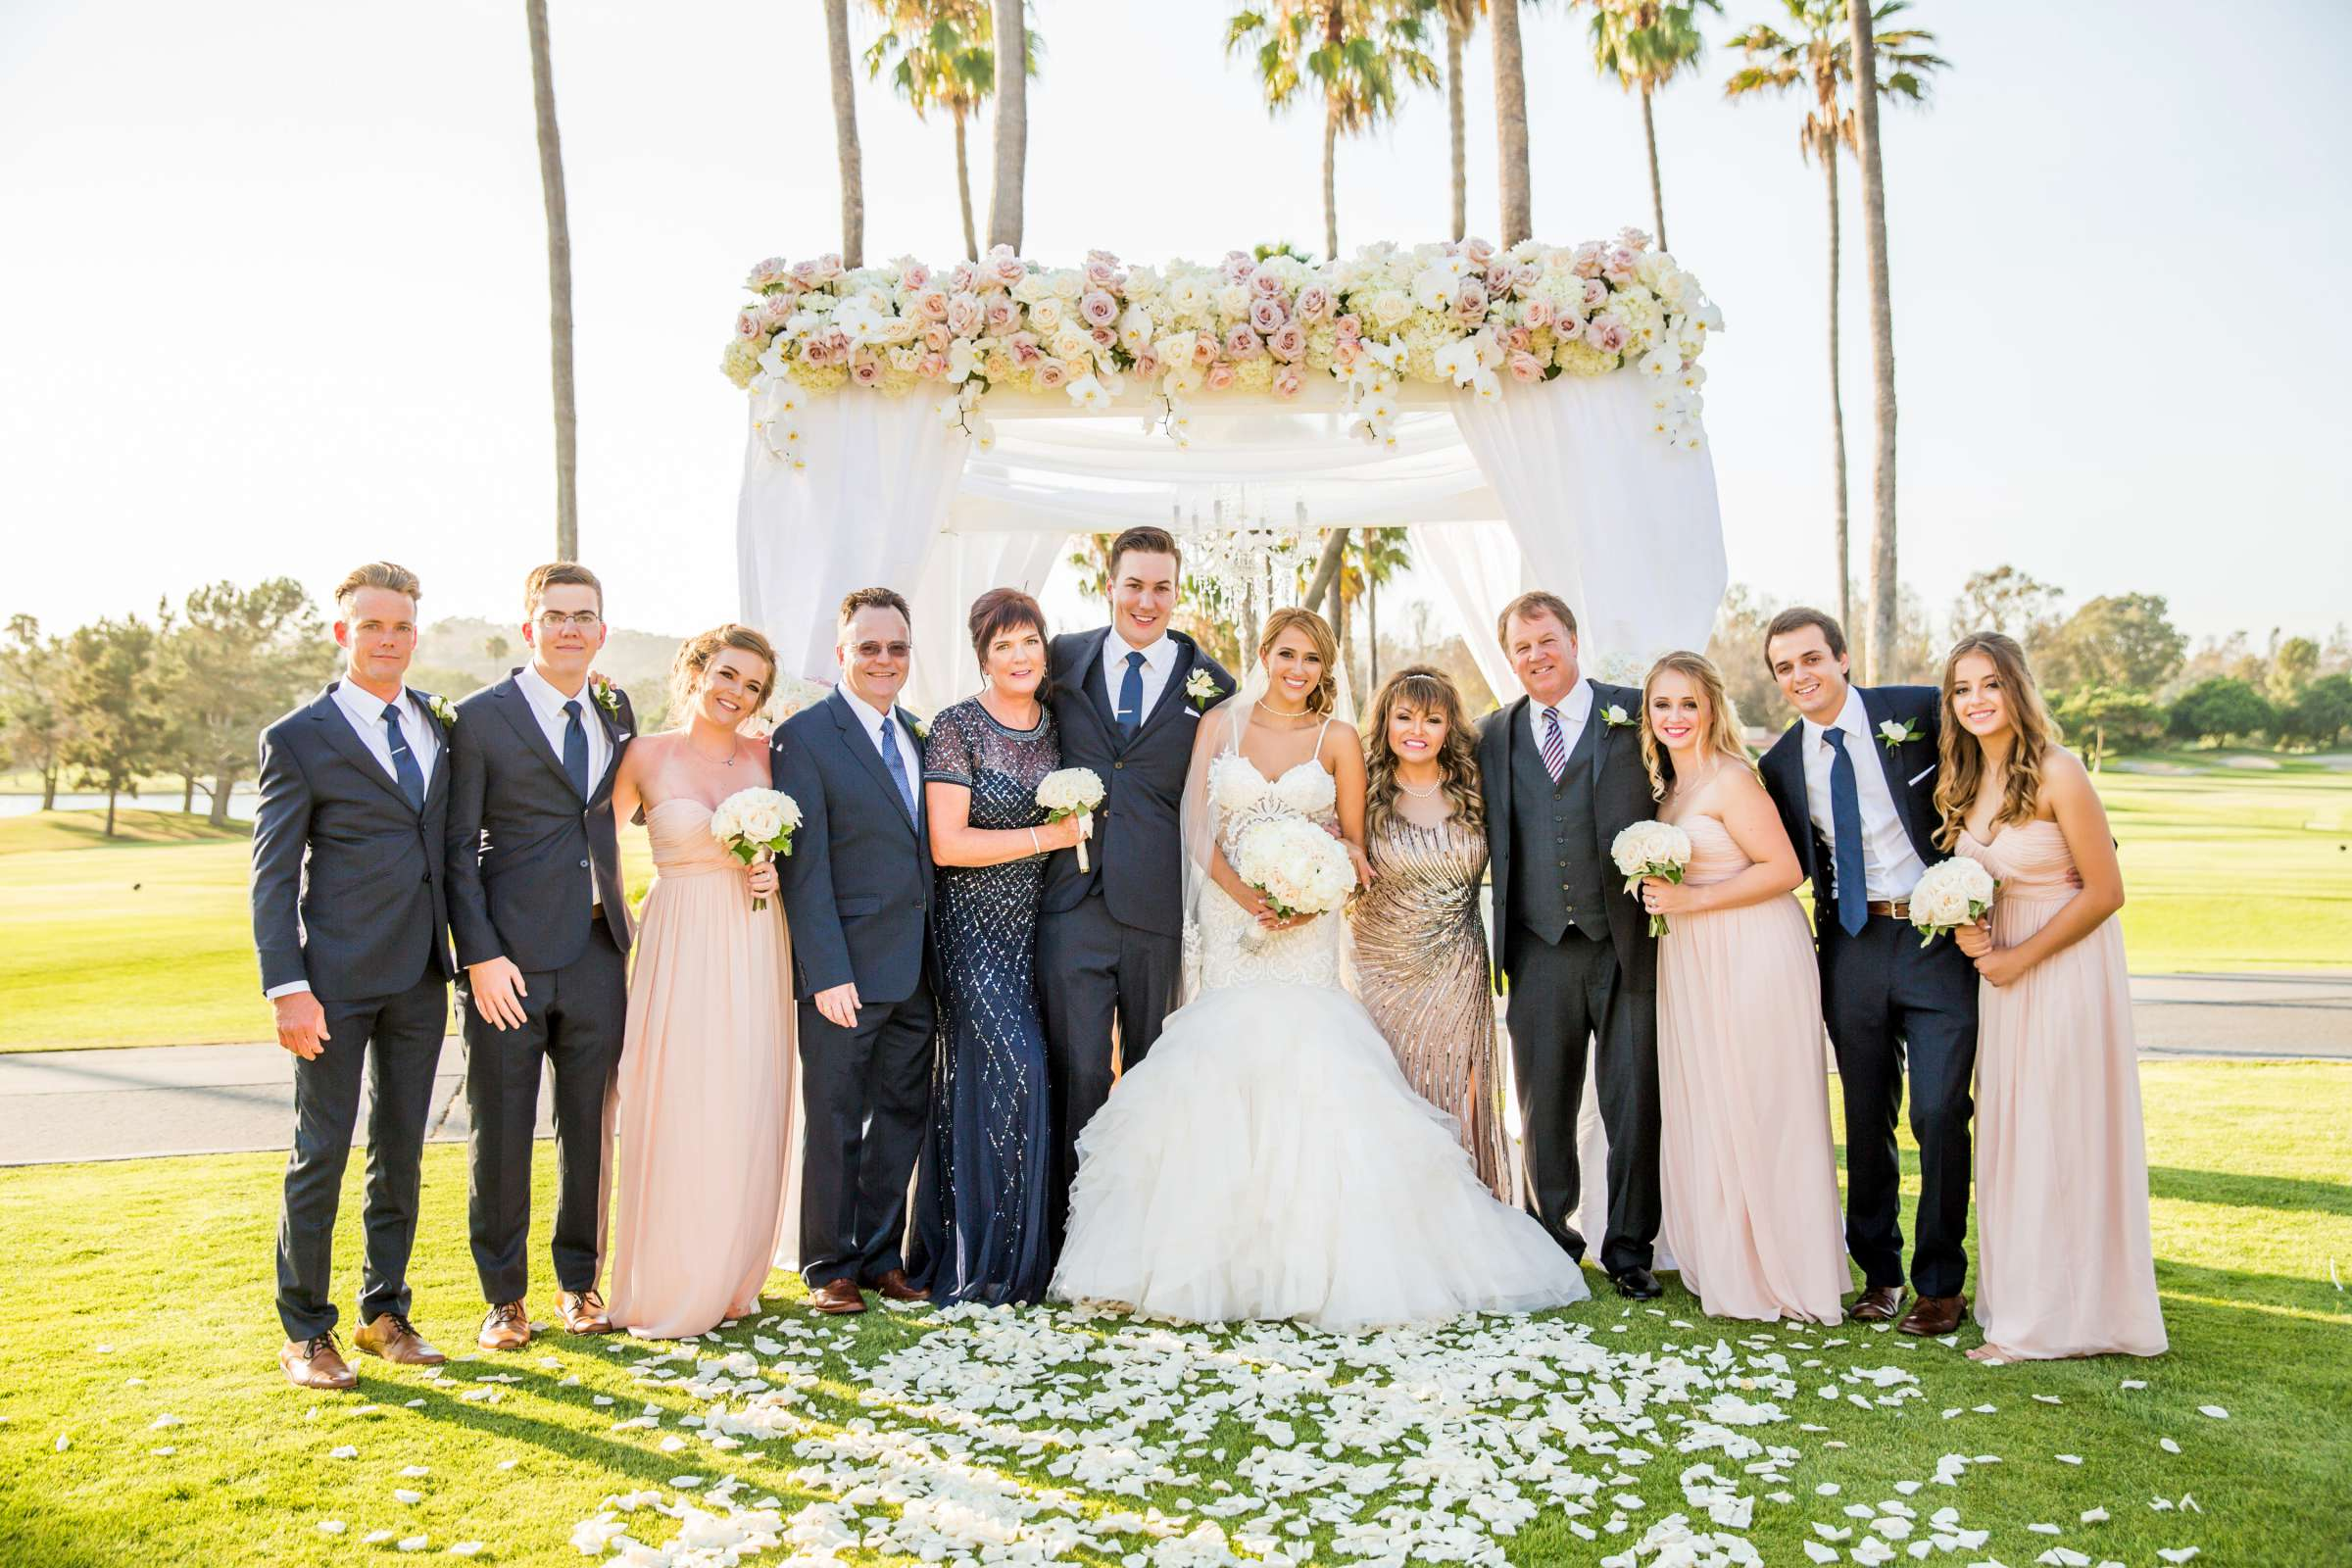 Fairbanks Ranch Country Club Wedding coordinated by Monarch Weddings, Gabriella and Kyle Wedding Photo #98 by True Photography